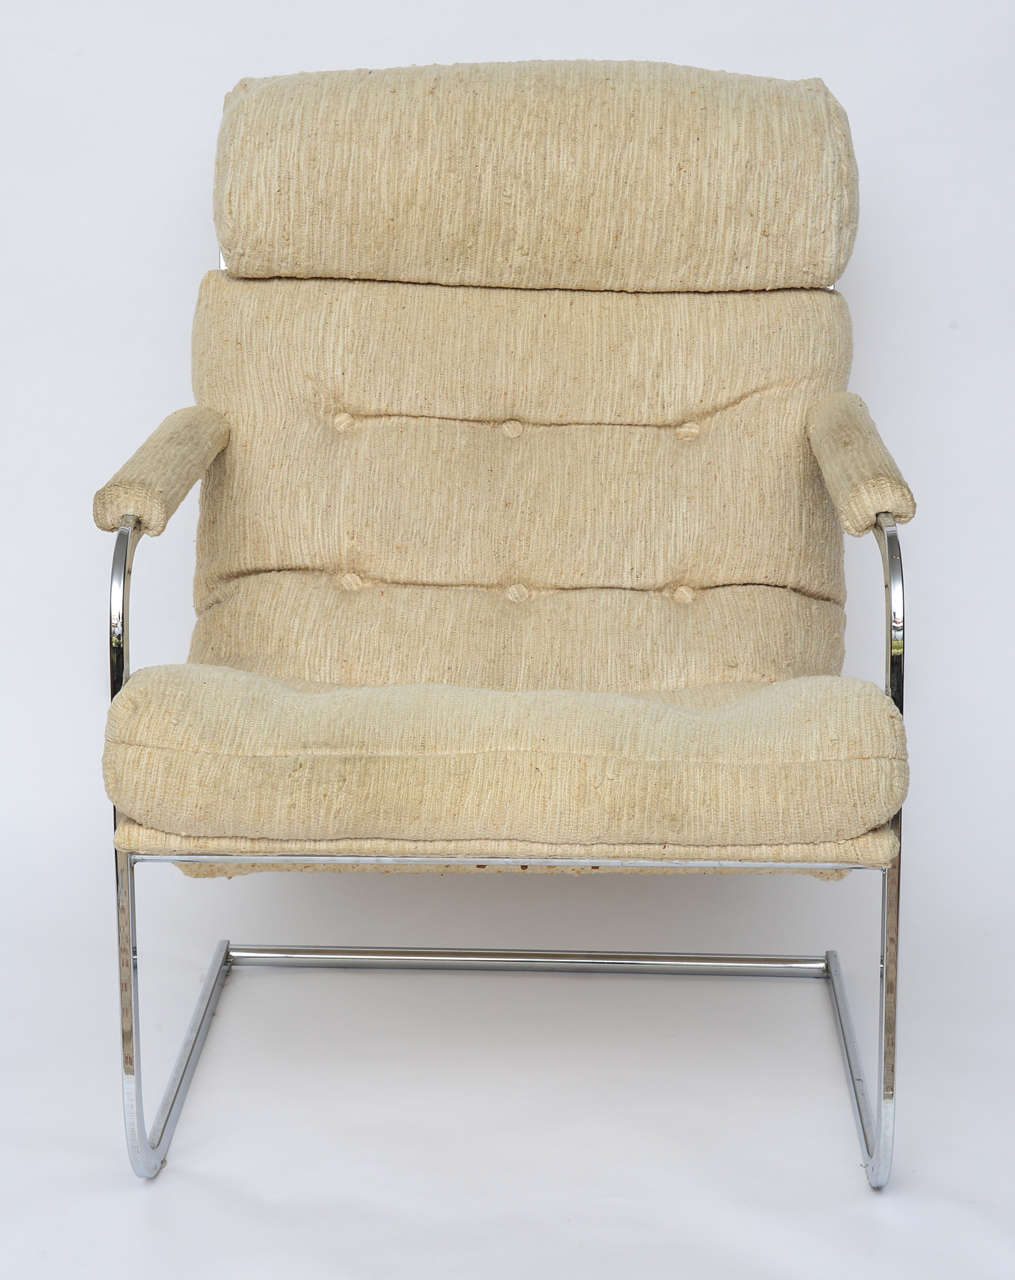 Milo baughman style cantilever lounge chair 1960s for sale for Sixties style chairs